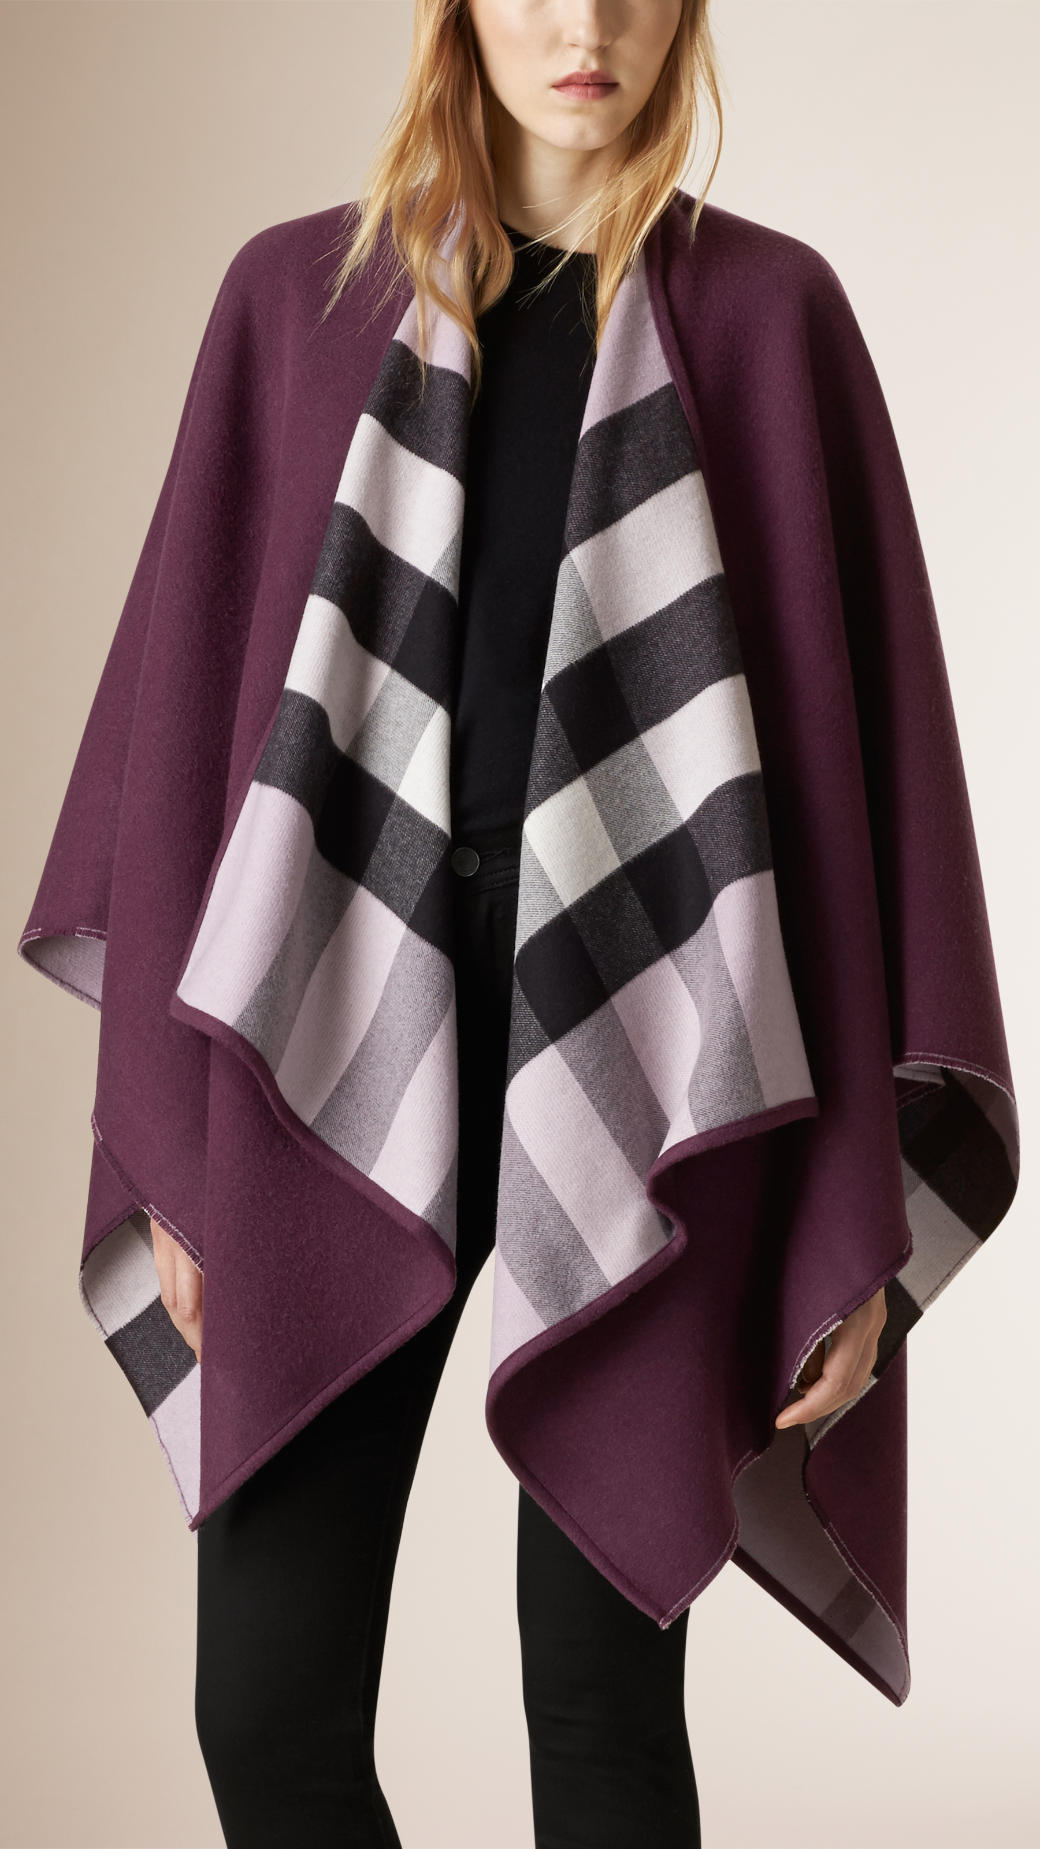 10 New Burberry Capes & Ponchos For Autumn Winter 2015 ...